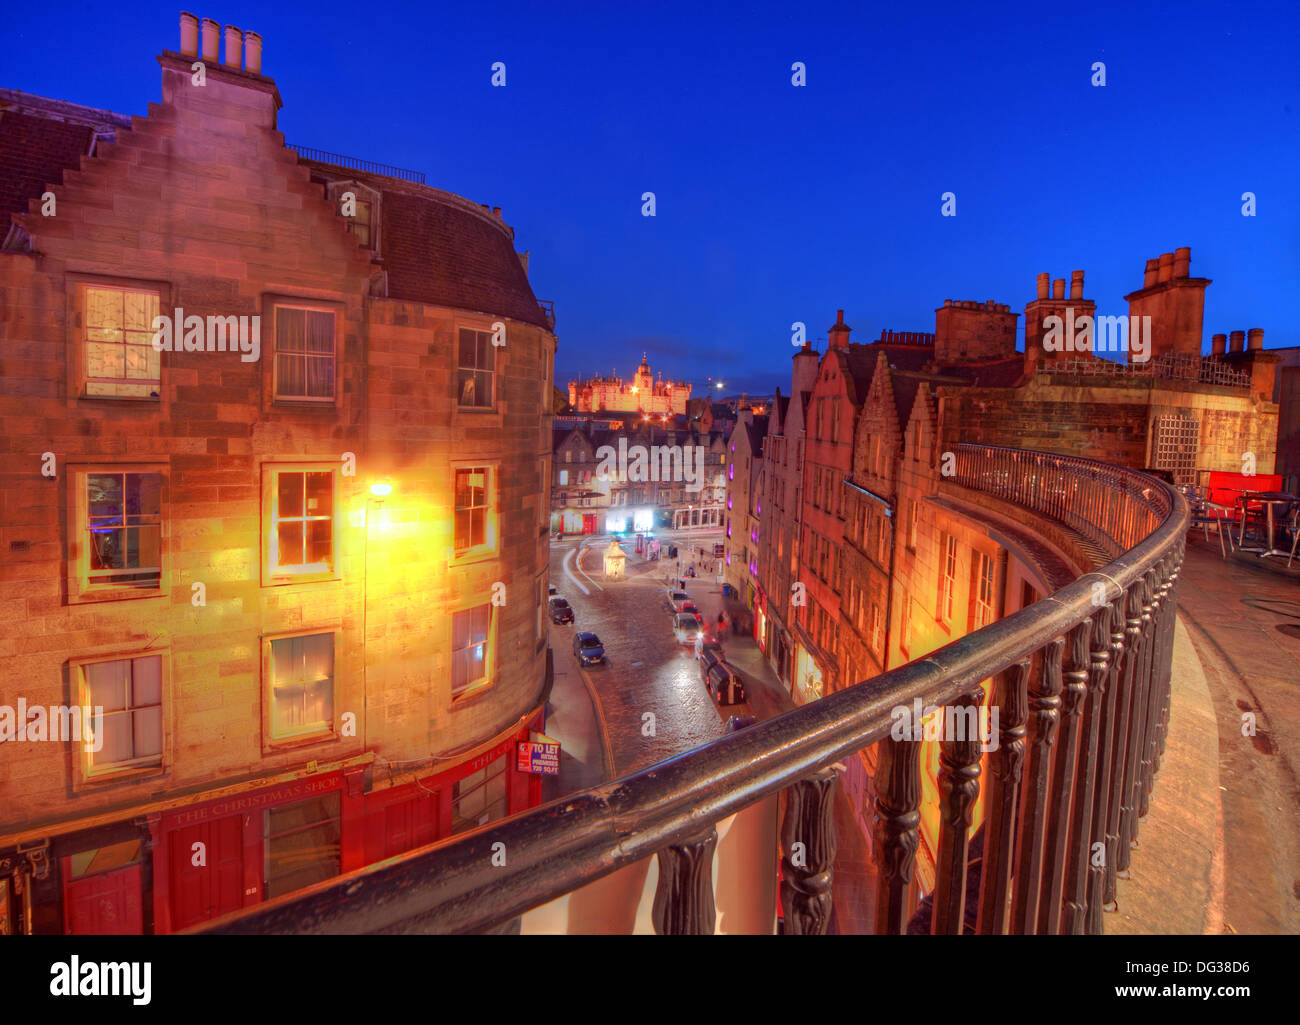 Railing at top of Victoria Street Edinburgh City Scotland UK at dusk Night Shot - Stock Image